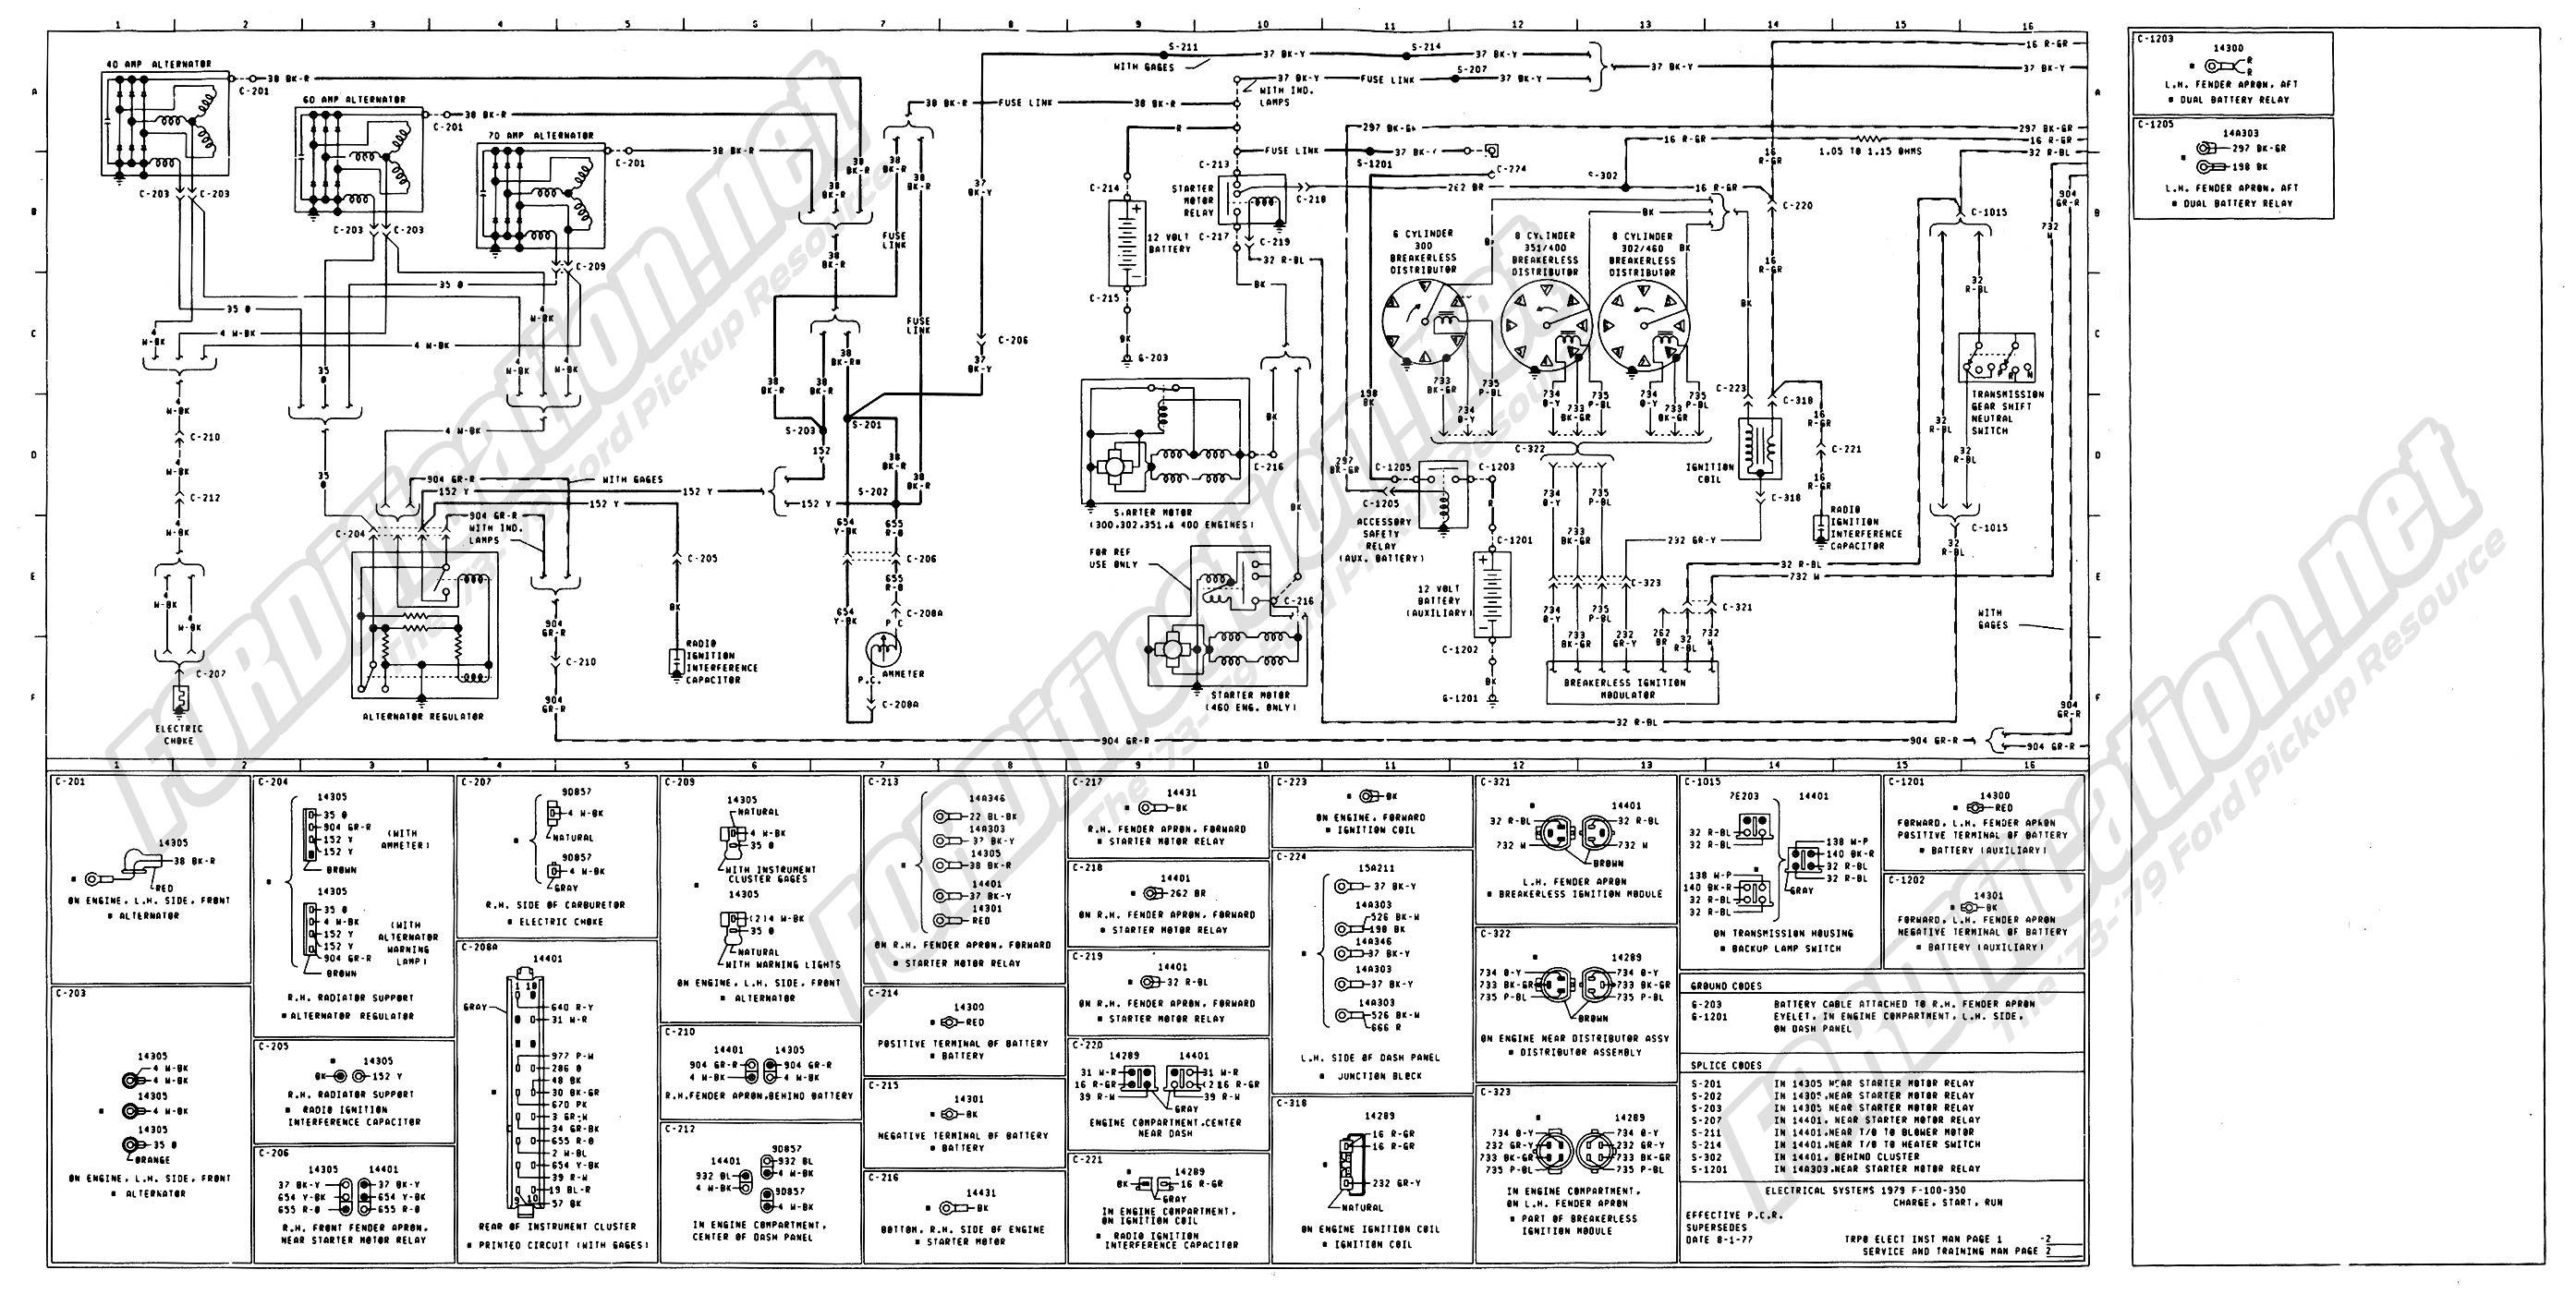 Wiring Diagram For A 73 78 Ford F100 Libraries Icp Heat Pump Defrost Board Model Phm342kooa 1973 1979 Truck Diagrams U0026 Schematics Fordification Netwiring